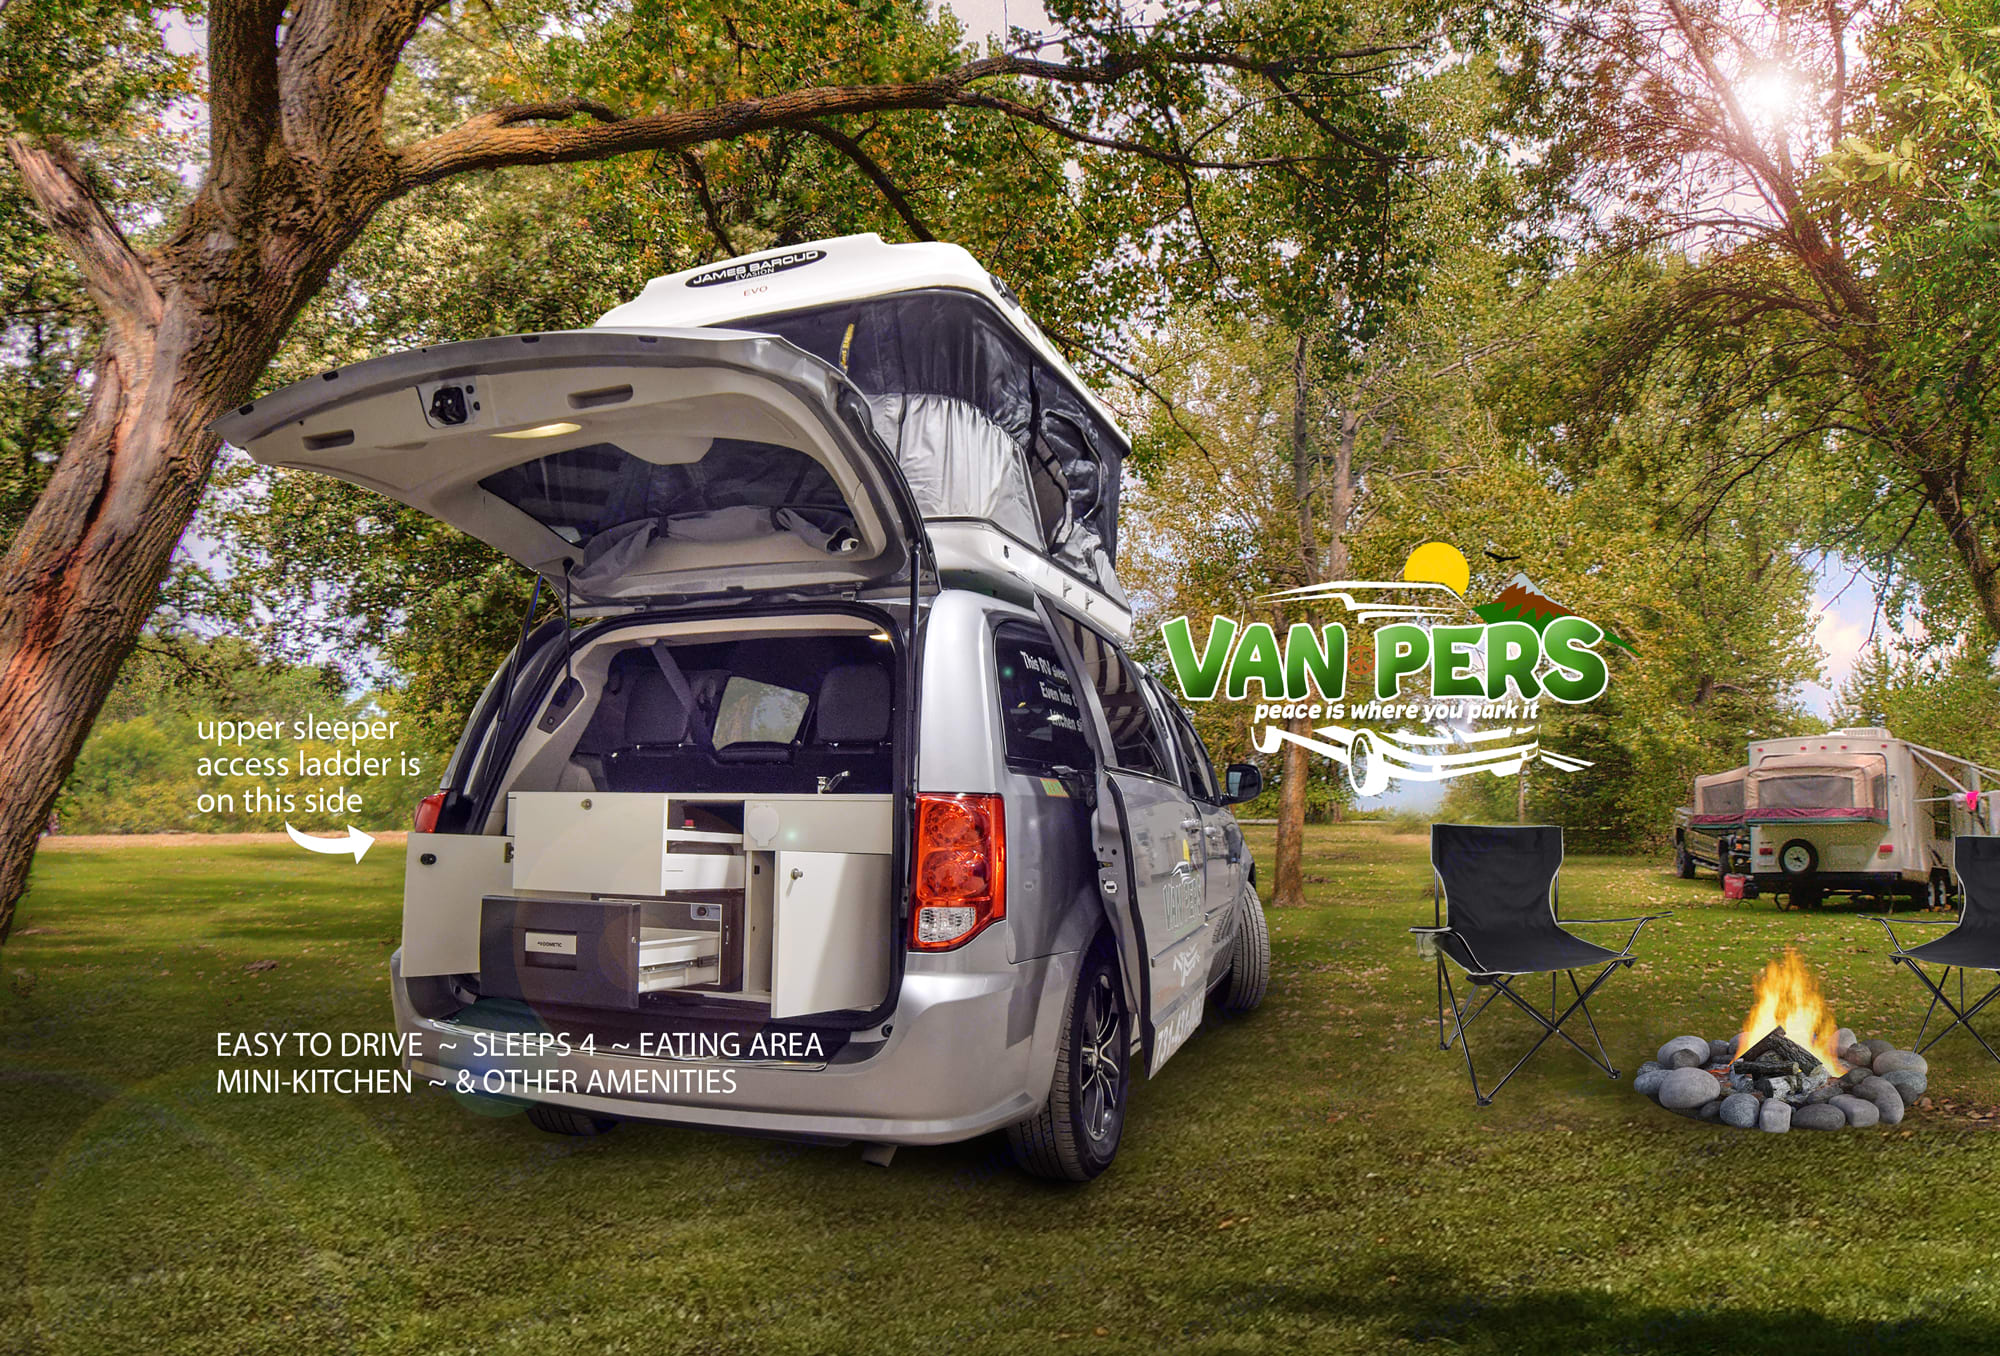 This is the one you've been looking for! Easy to drive, park, and pop-up, so you can spend time ENJOYING your getaway! . Dodge Caravan 2018